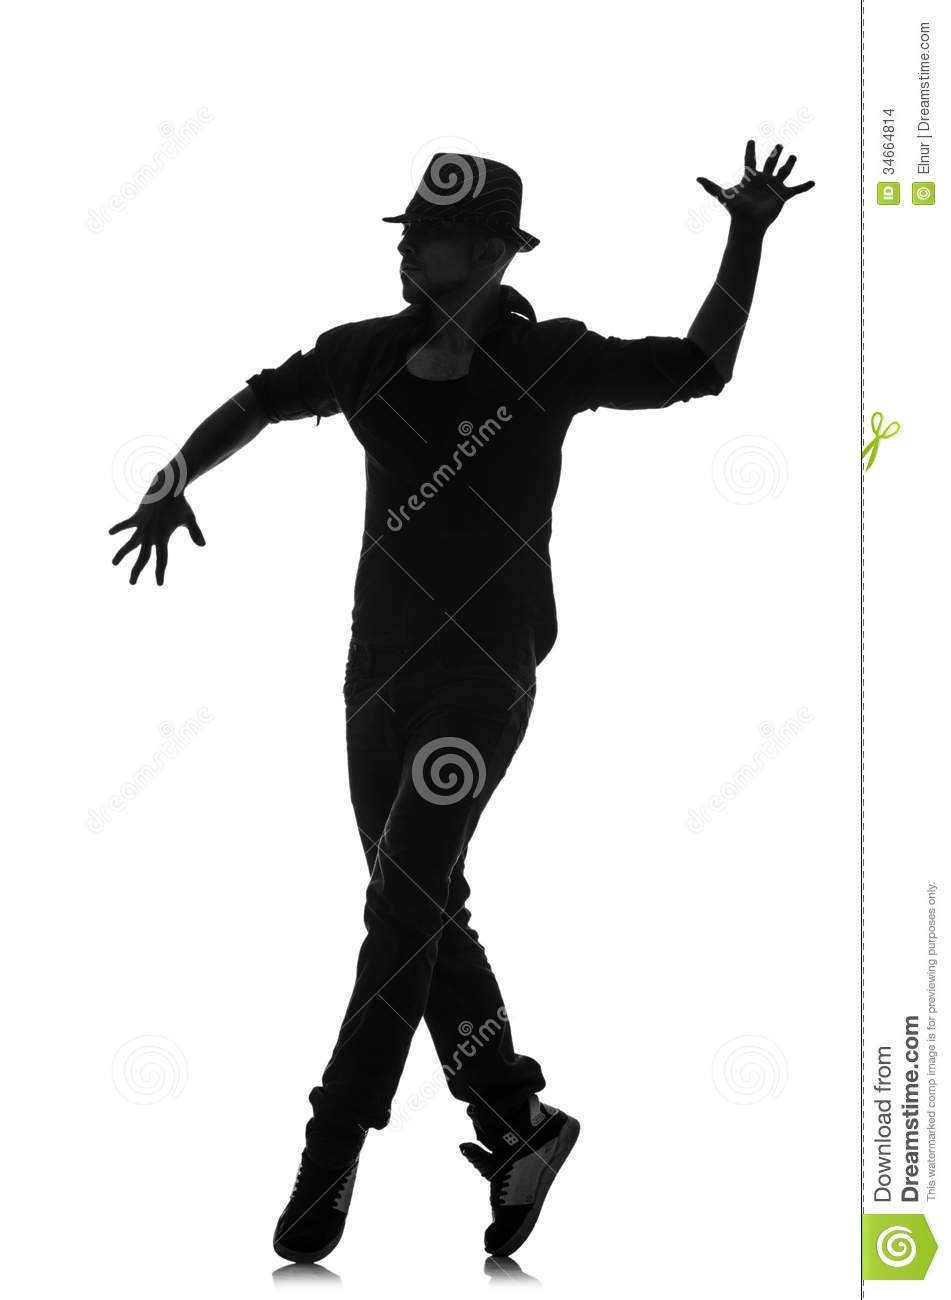 Silhouette of male dancer stock photo. Image of athlete ...